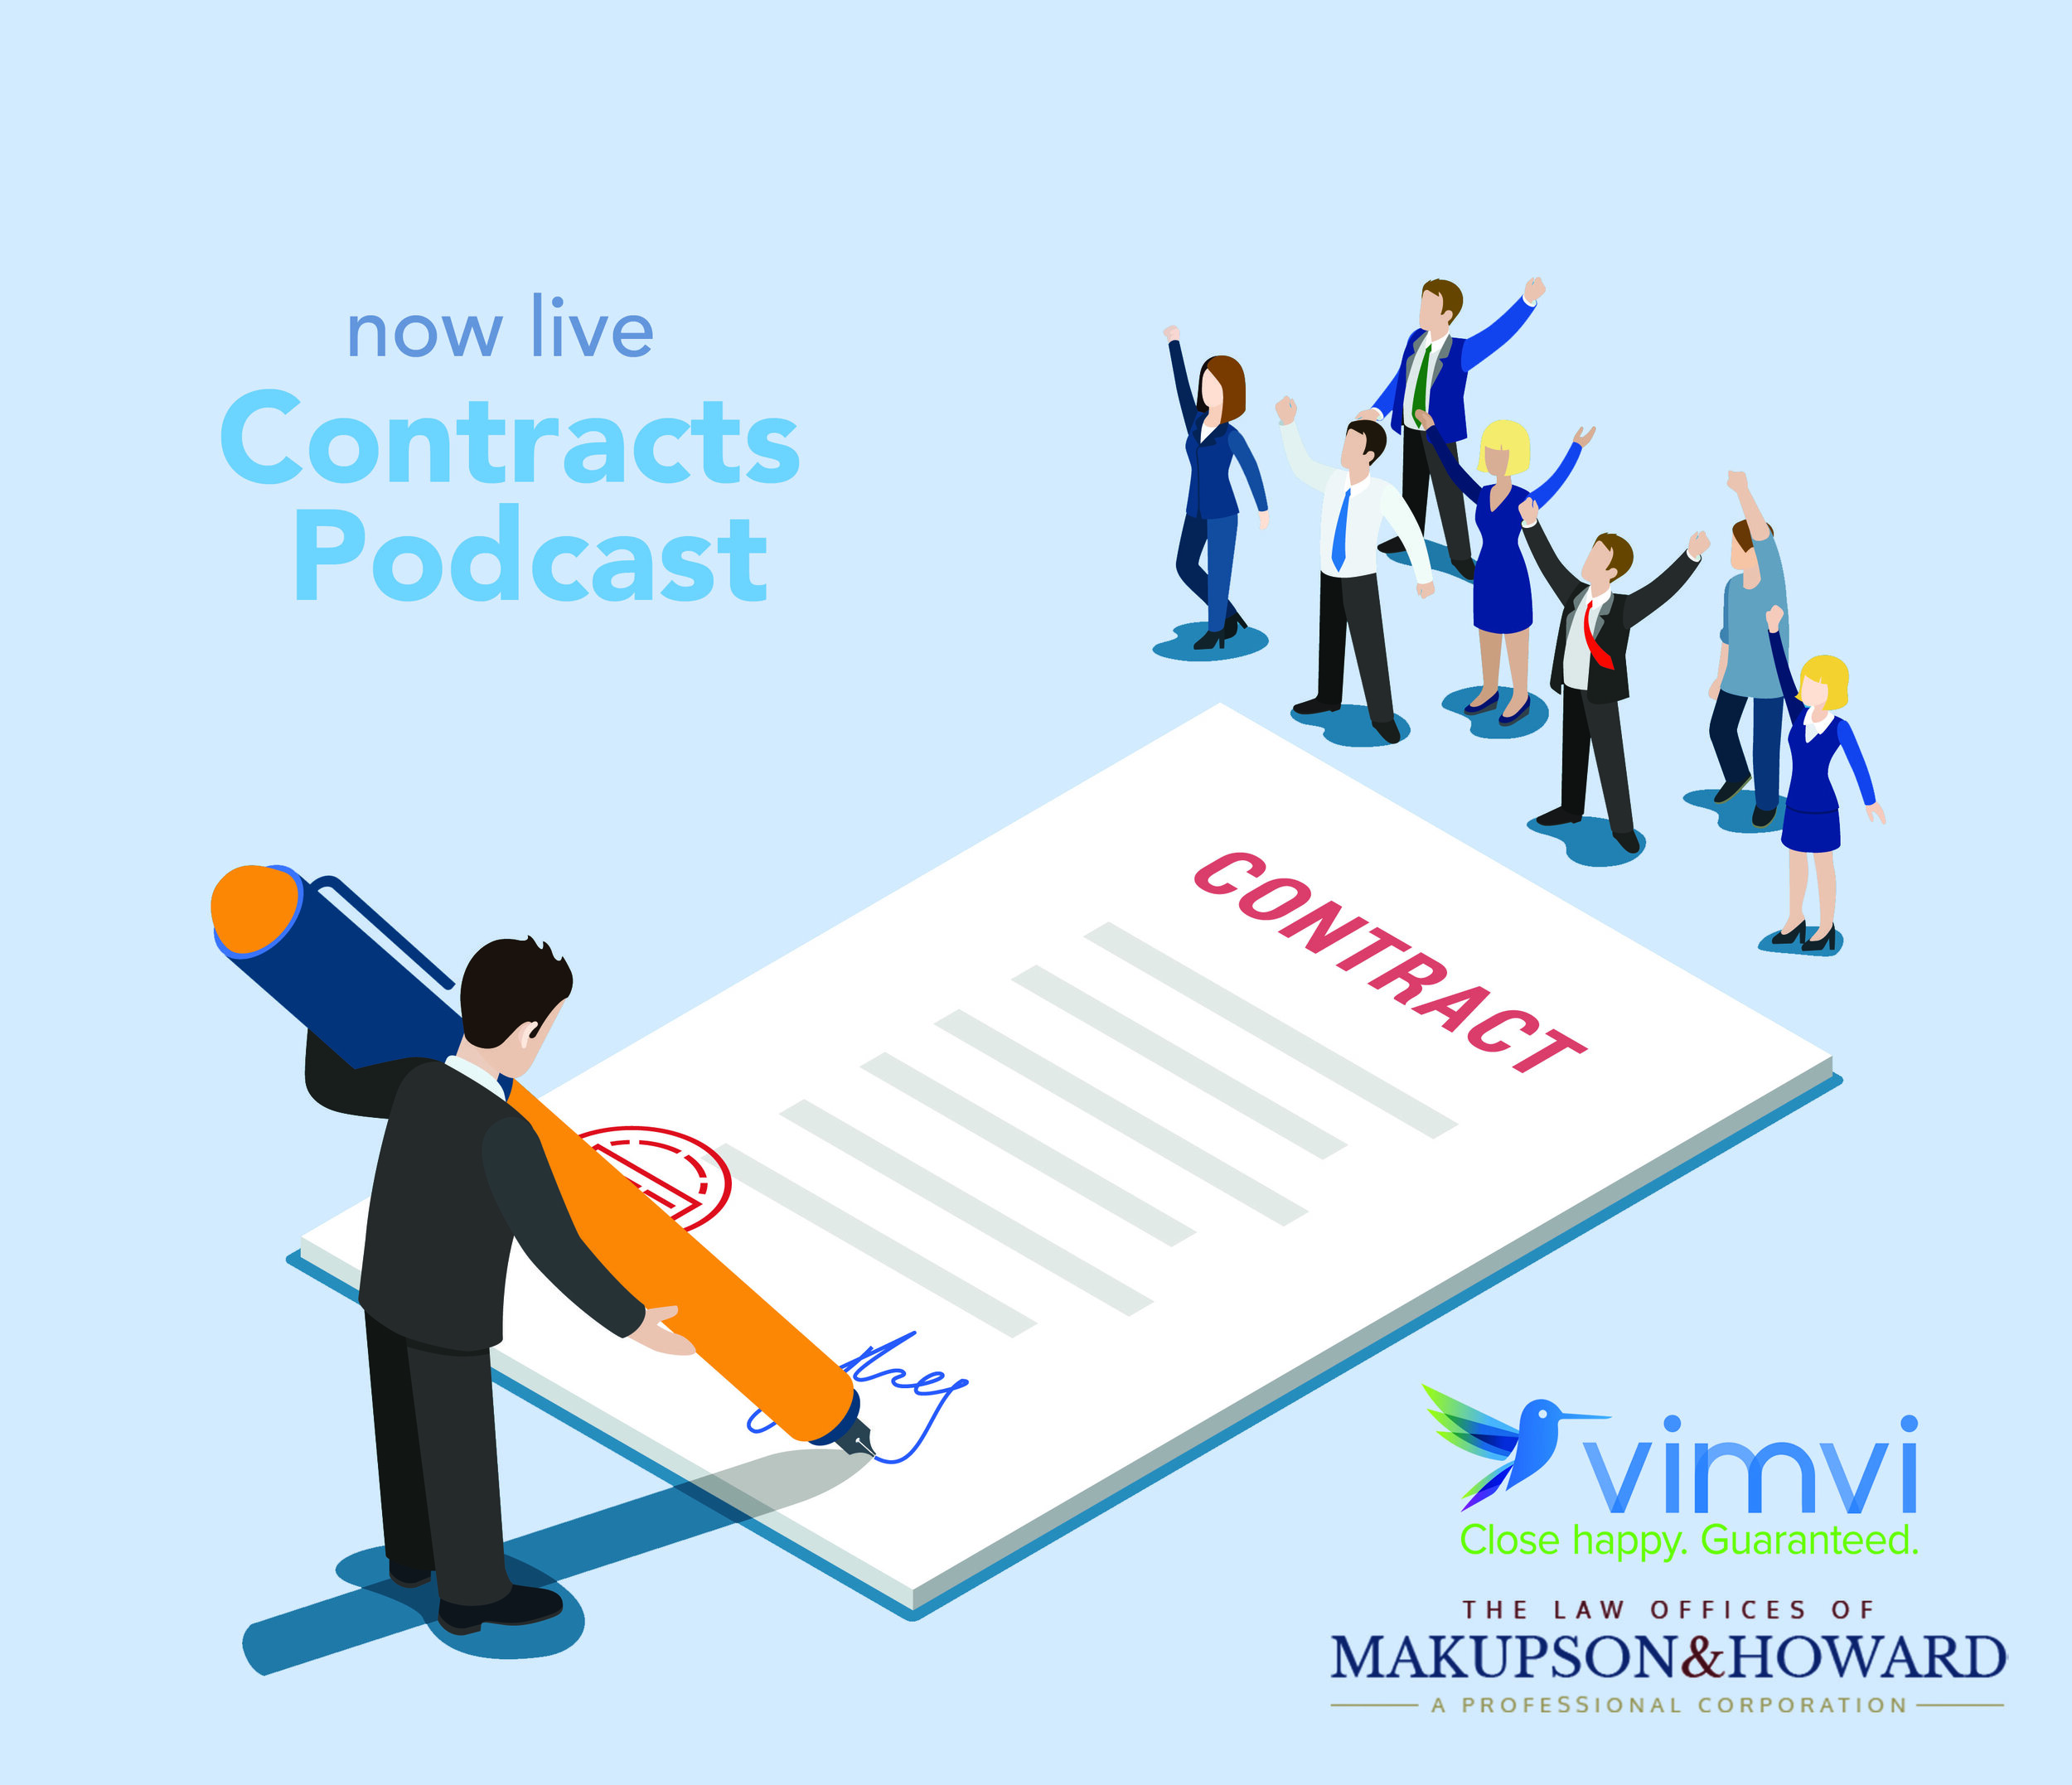 Contracts Podcast - with Carolyn Makupson, Esq. and Vimvi Founders.